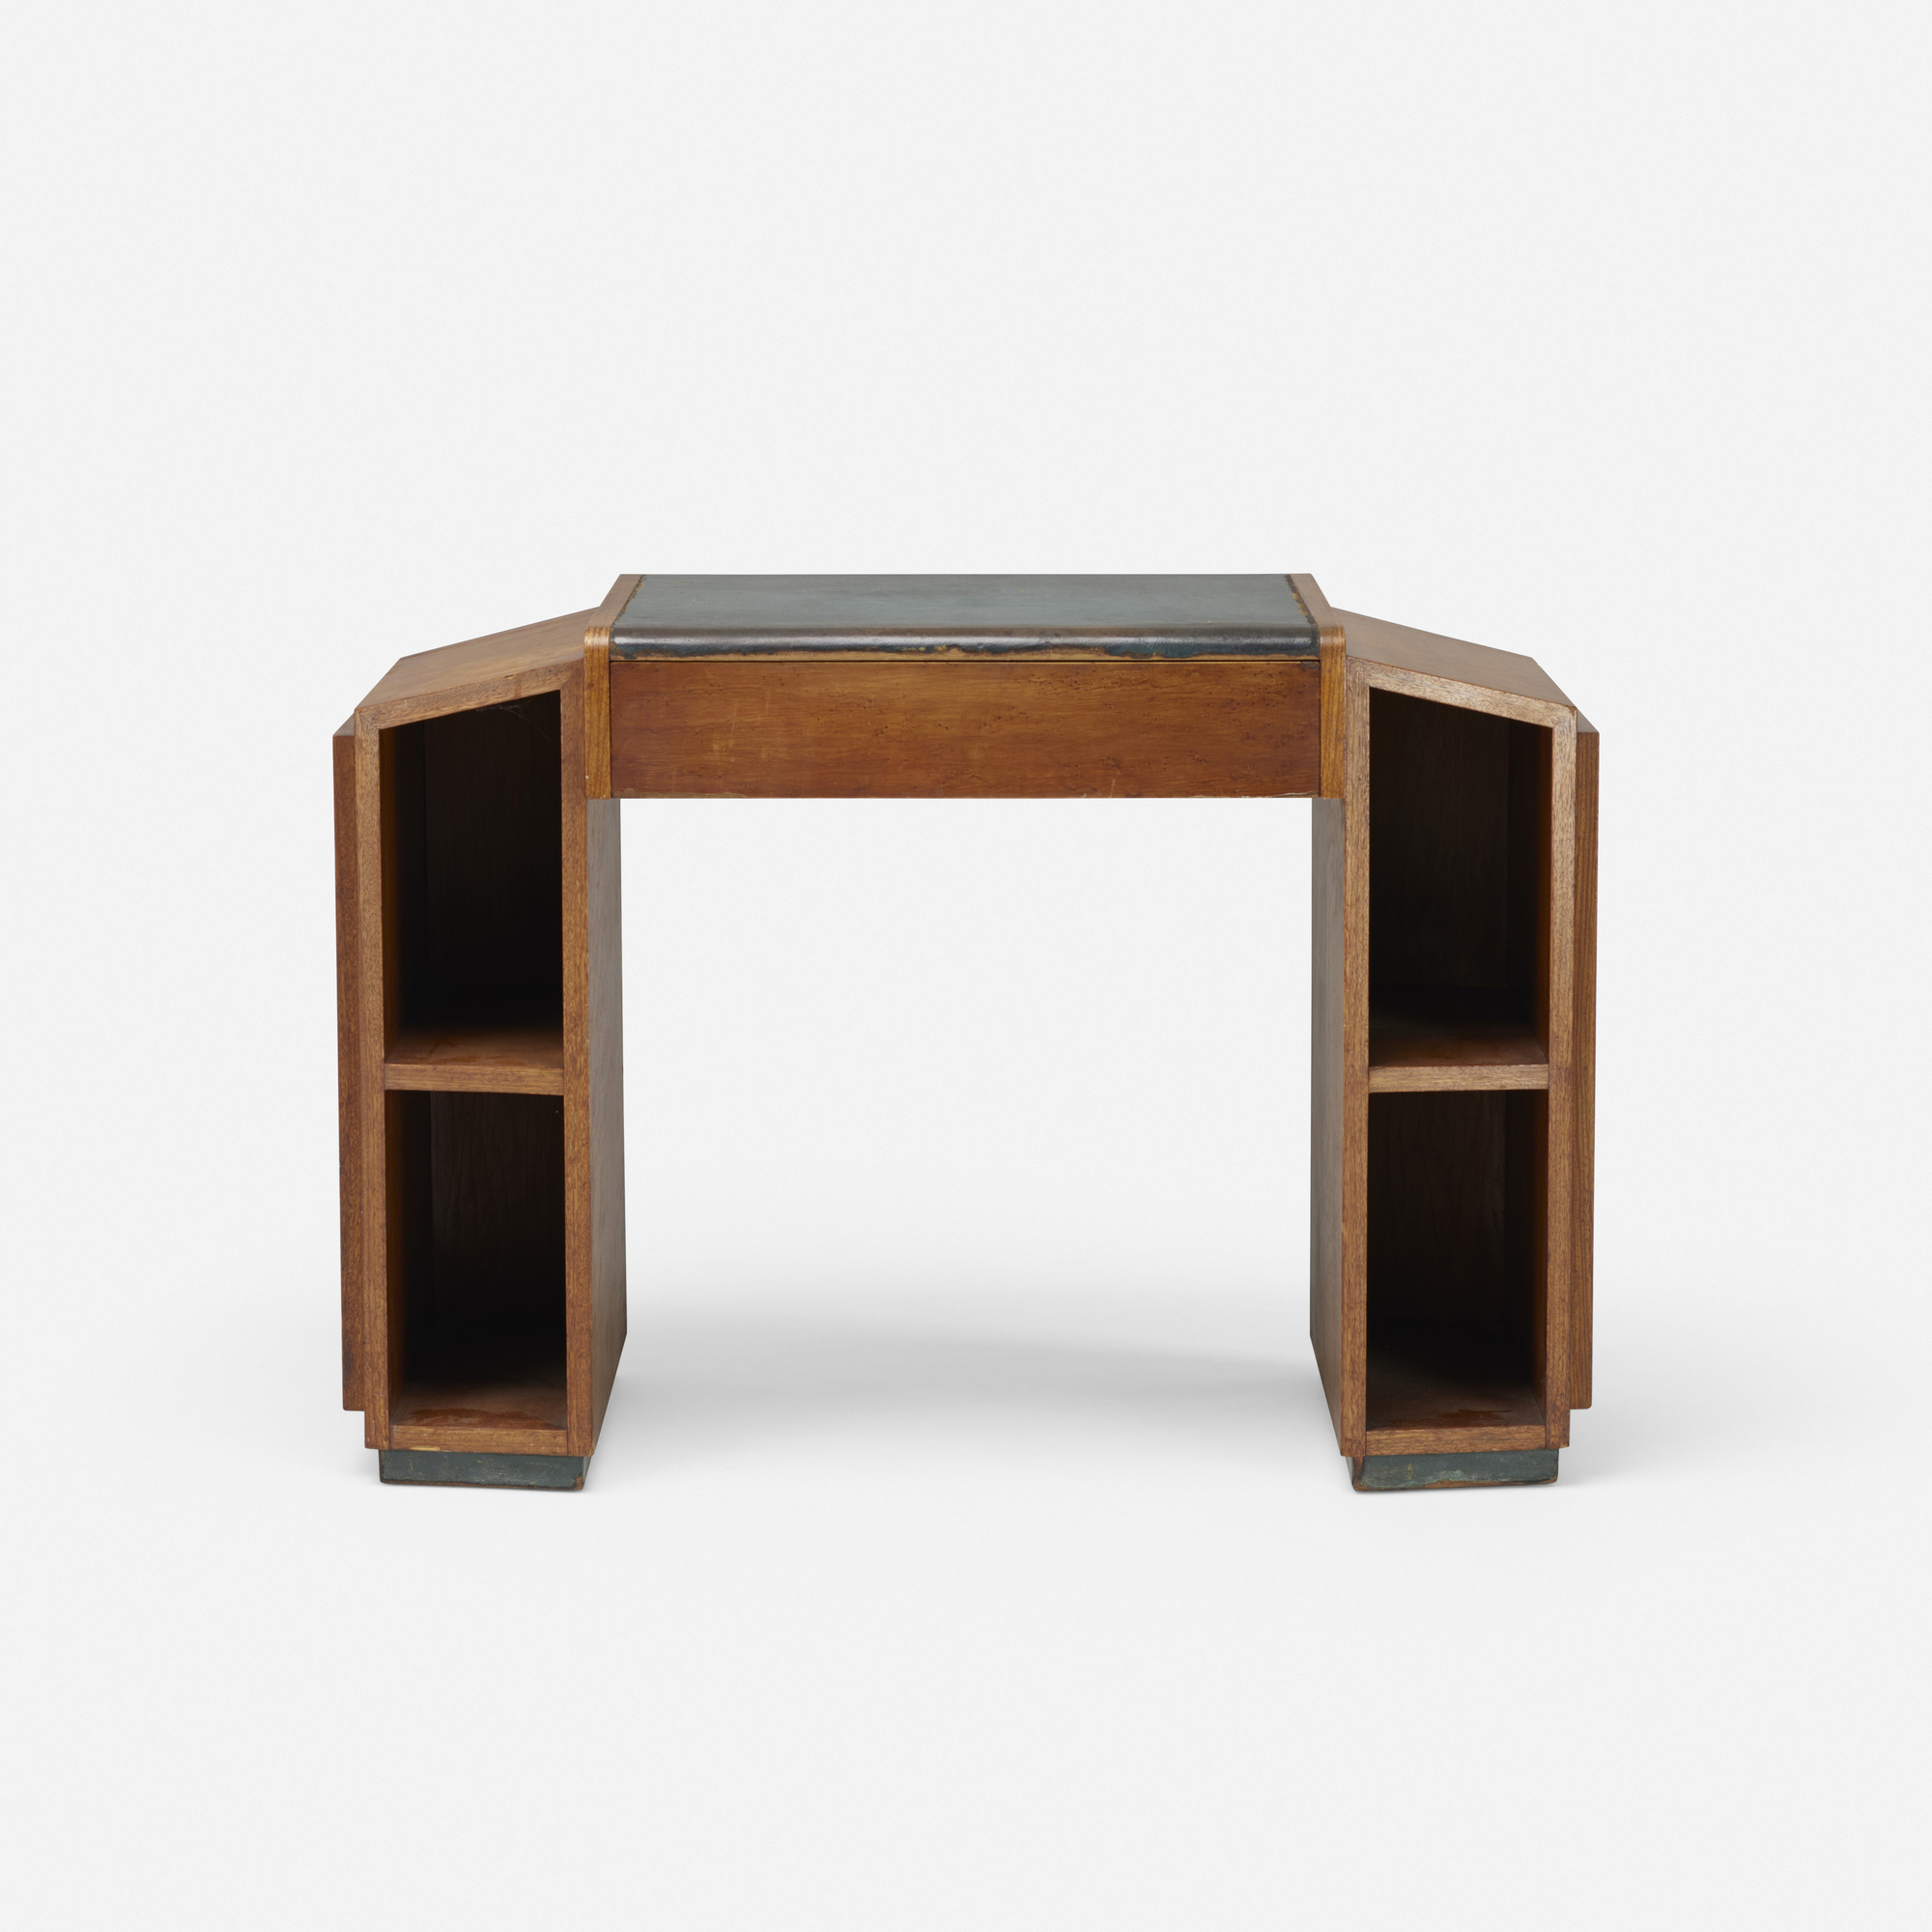 134: Art Deco / desk (1 of 2)